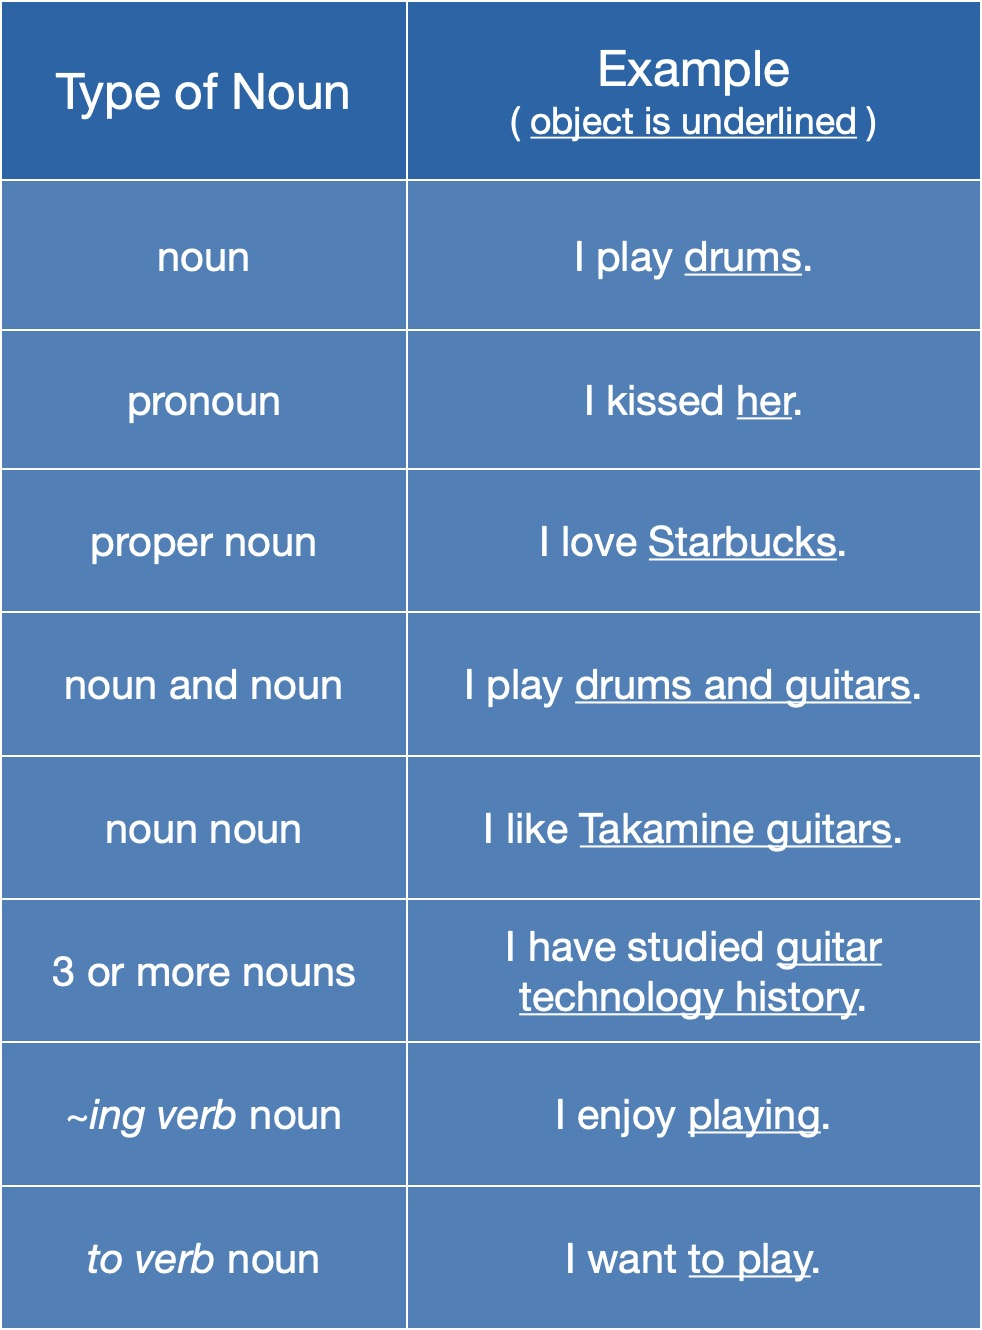 Type of Noun Object Blue New !